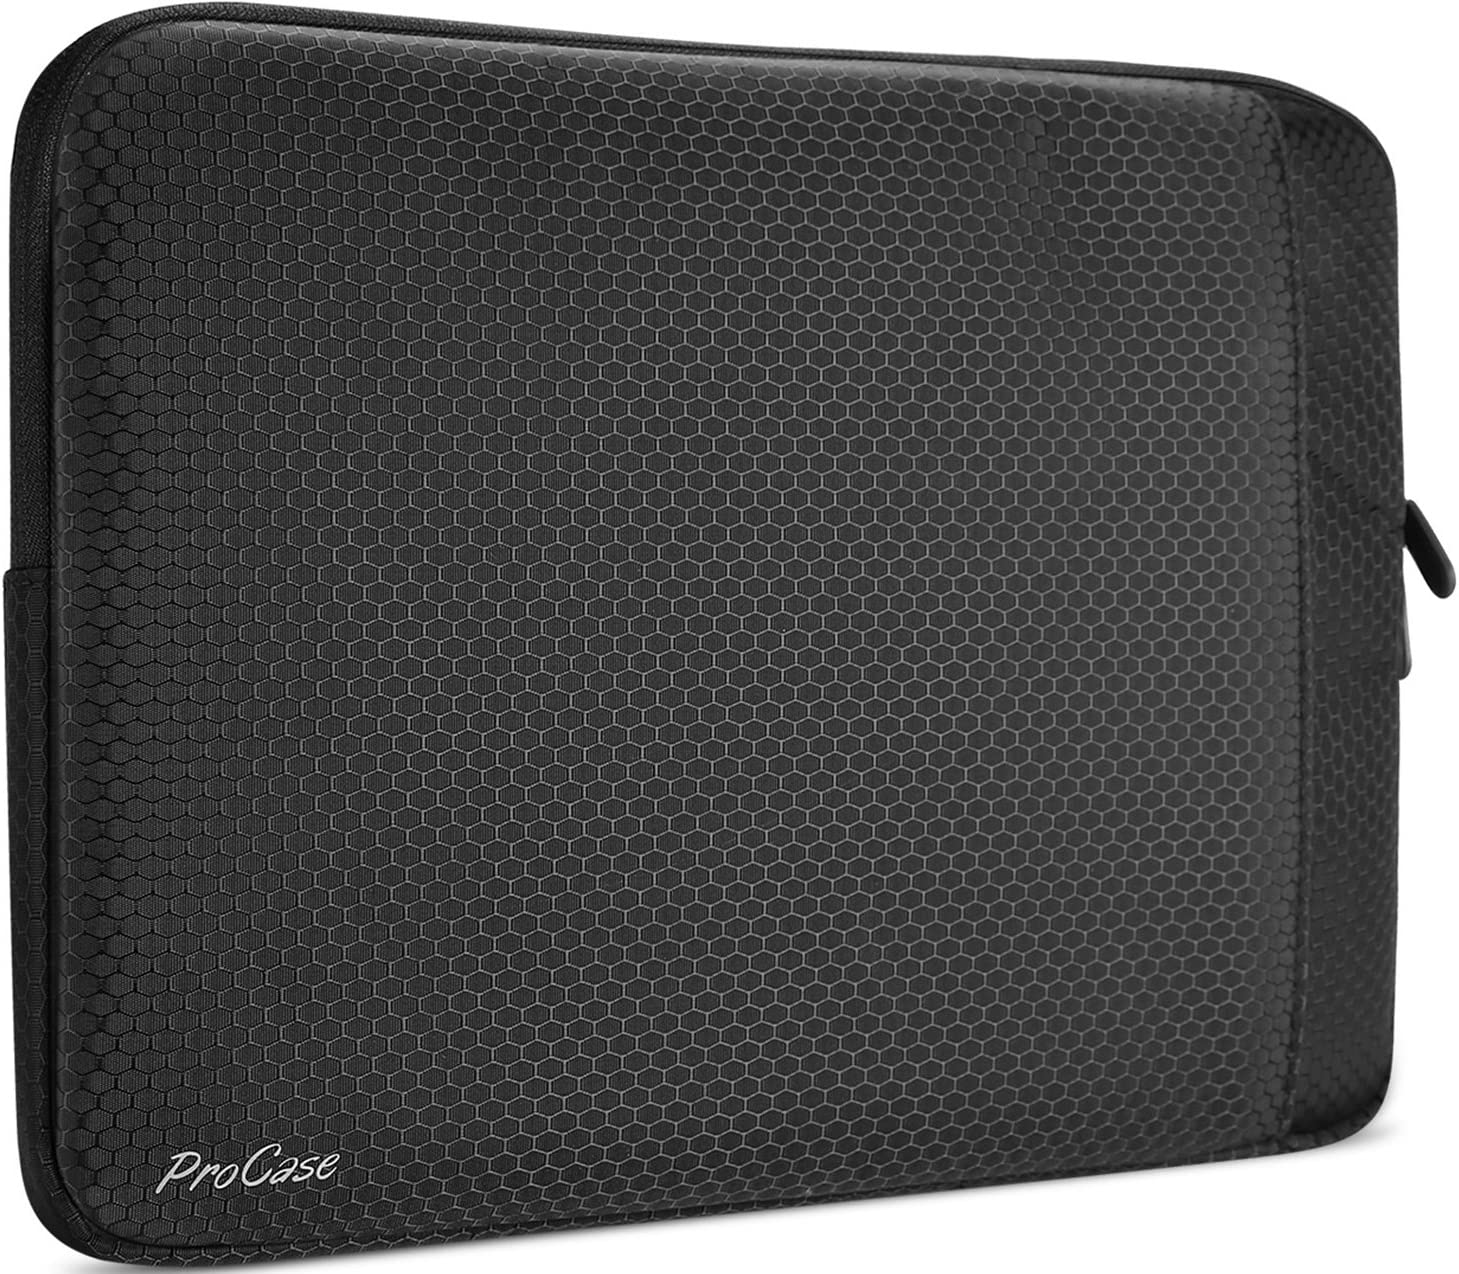 ProCase 9.7-10.5 inch Tablet Sleeve Case for iPad 10.2 / iPad Pro 11 / iPad 9.7 / iPad Pro 10.5 / Pro 9.7, Protective Sleeve Bag Cover for iPad Air 10.5 Air 2 Air 1 / iPad 2 3 4 / Galaxy Tablets 10.1